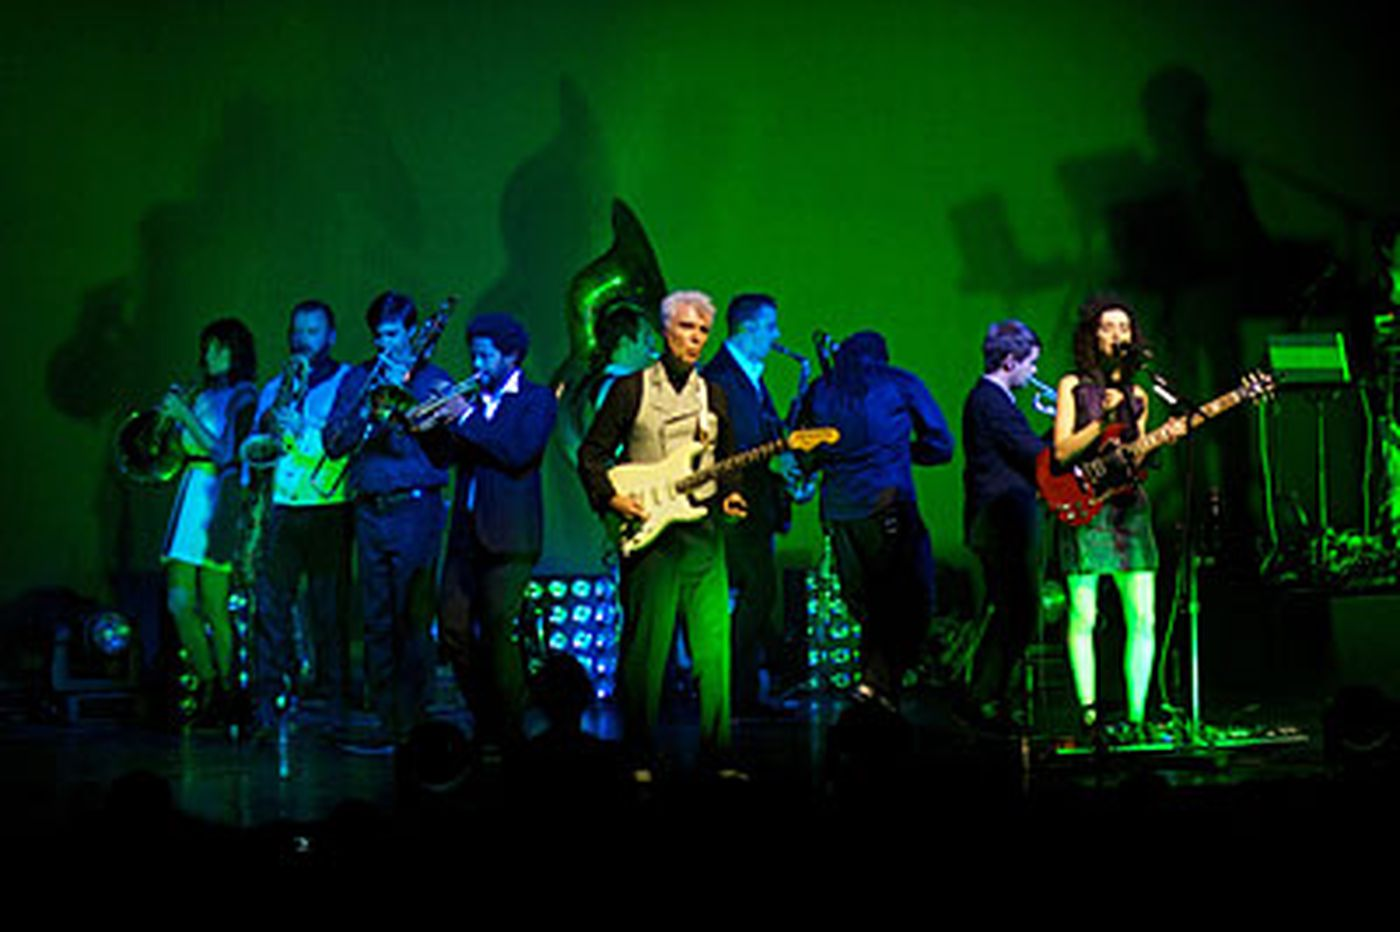 David Byrne and St. Vincent prove the vitality of live music